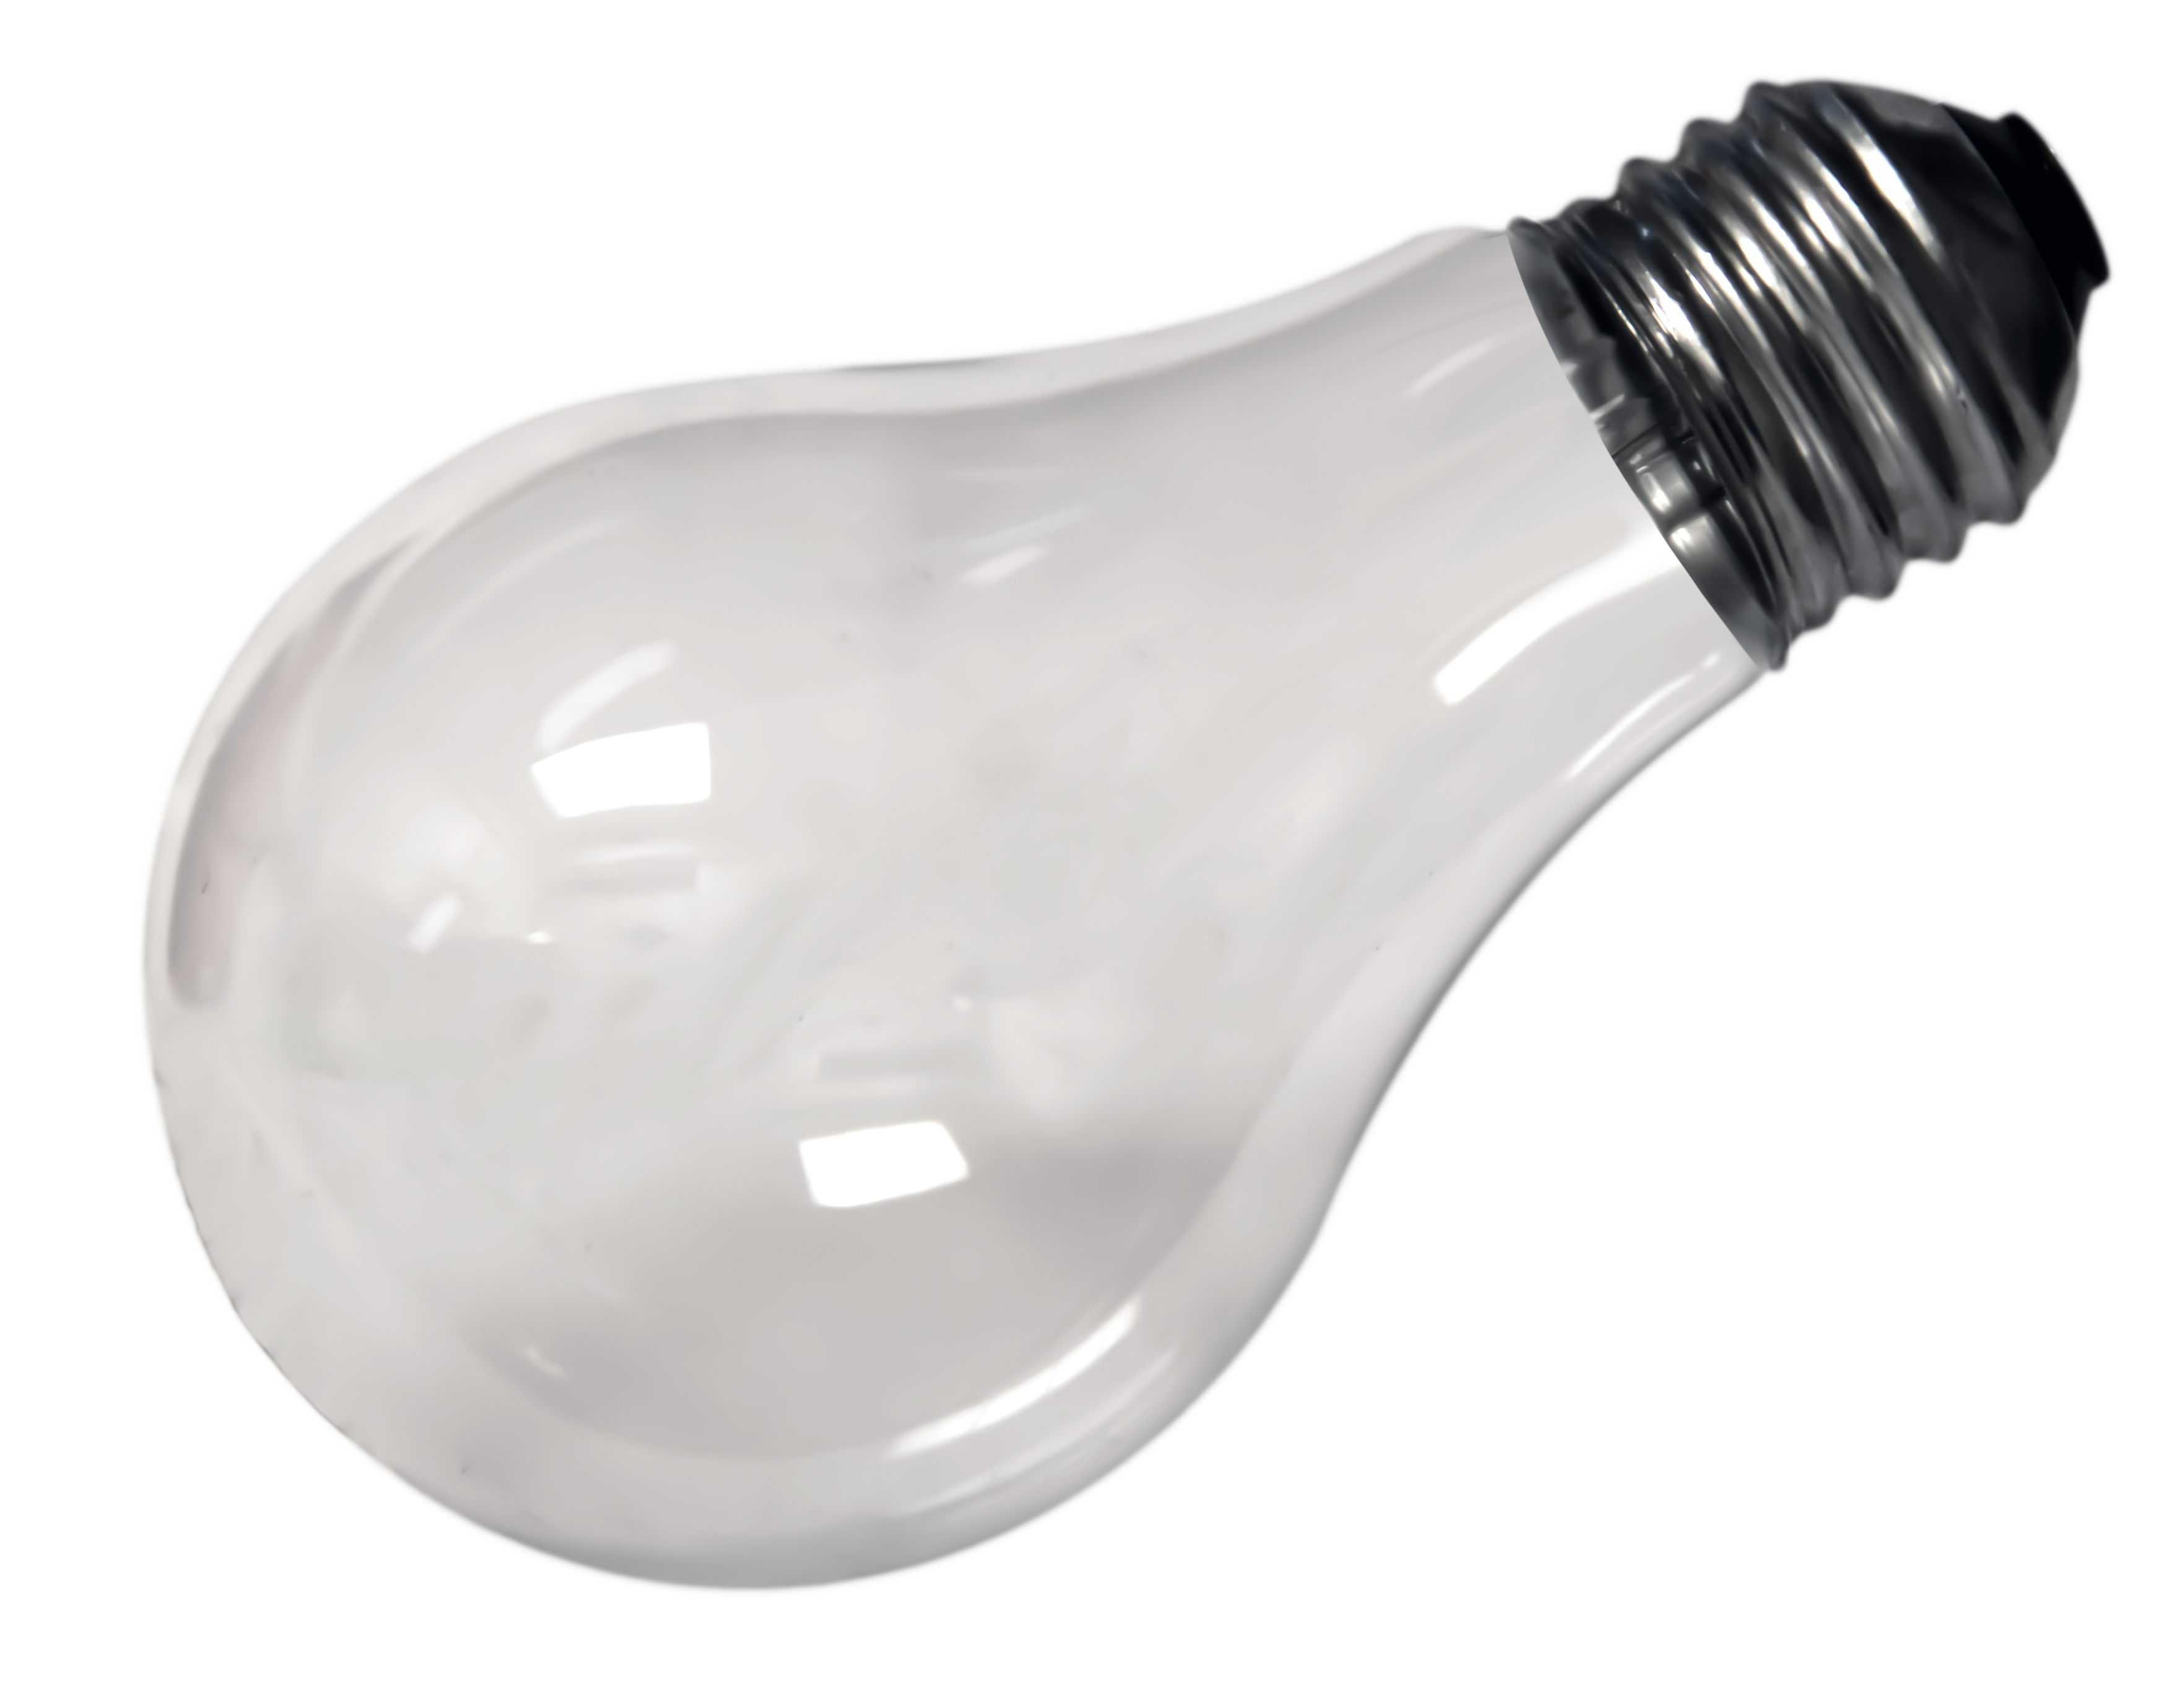 Light Bulb Png Picture PNG Image - Bulb HD PNG